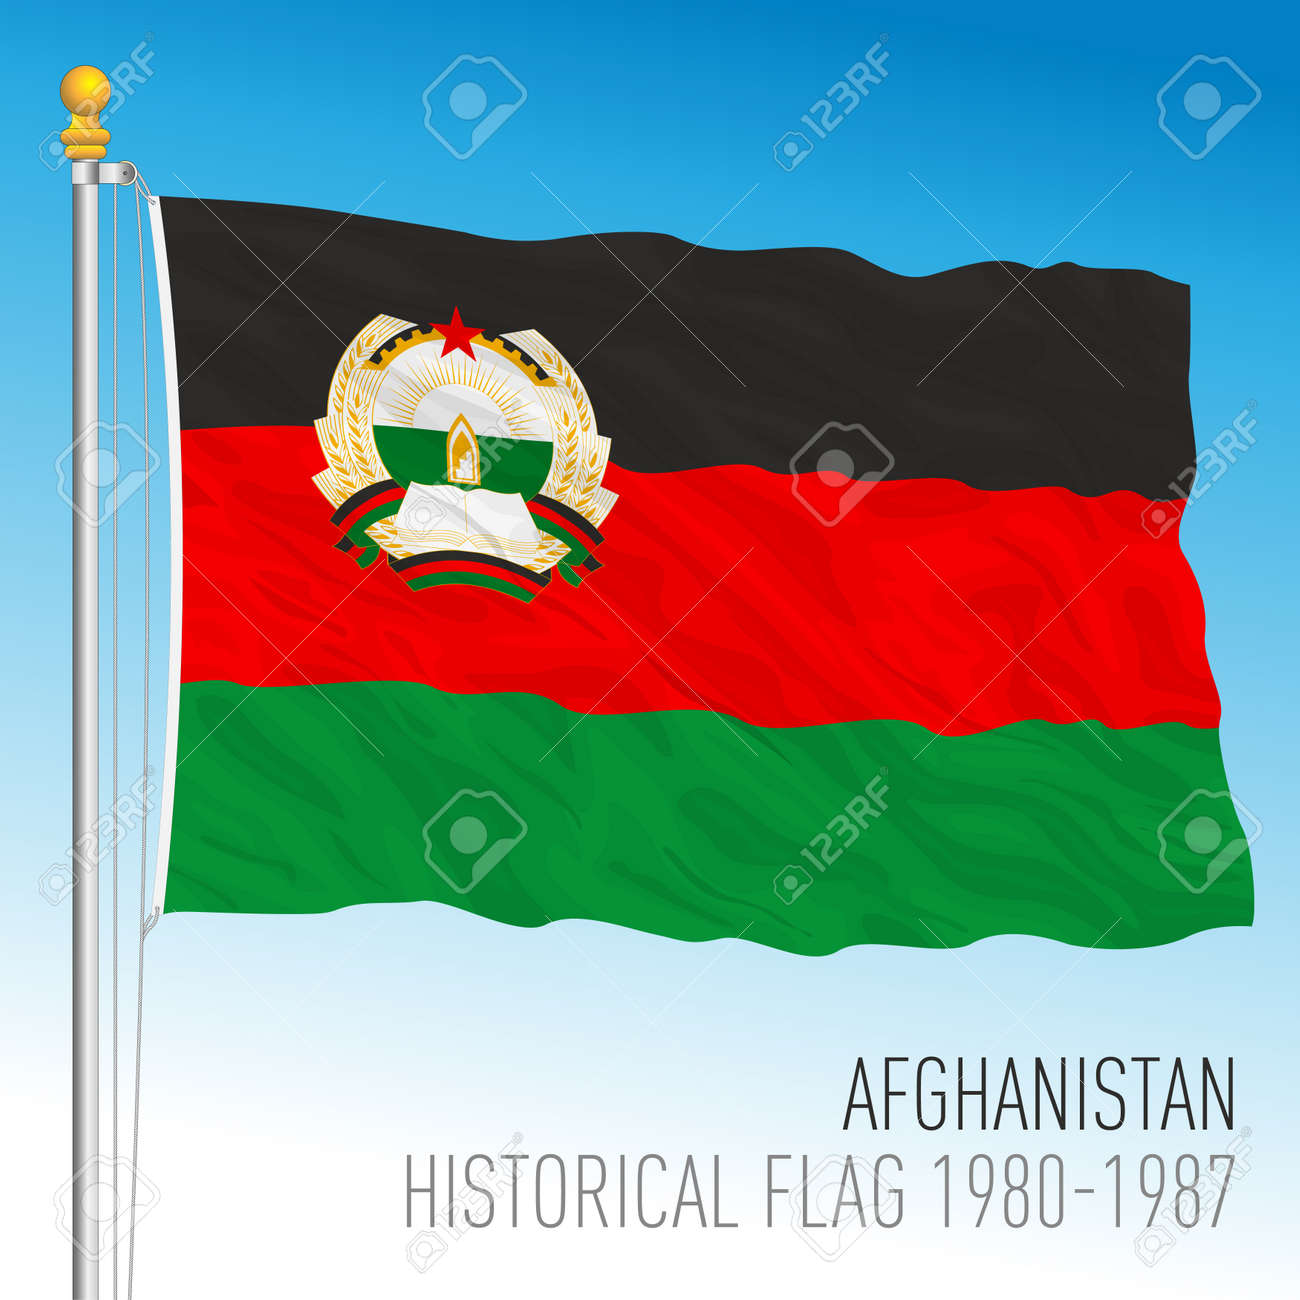 Afghanistan historical flag, years 1980 to 1987, asiatic country, vector illustration - 173270078